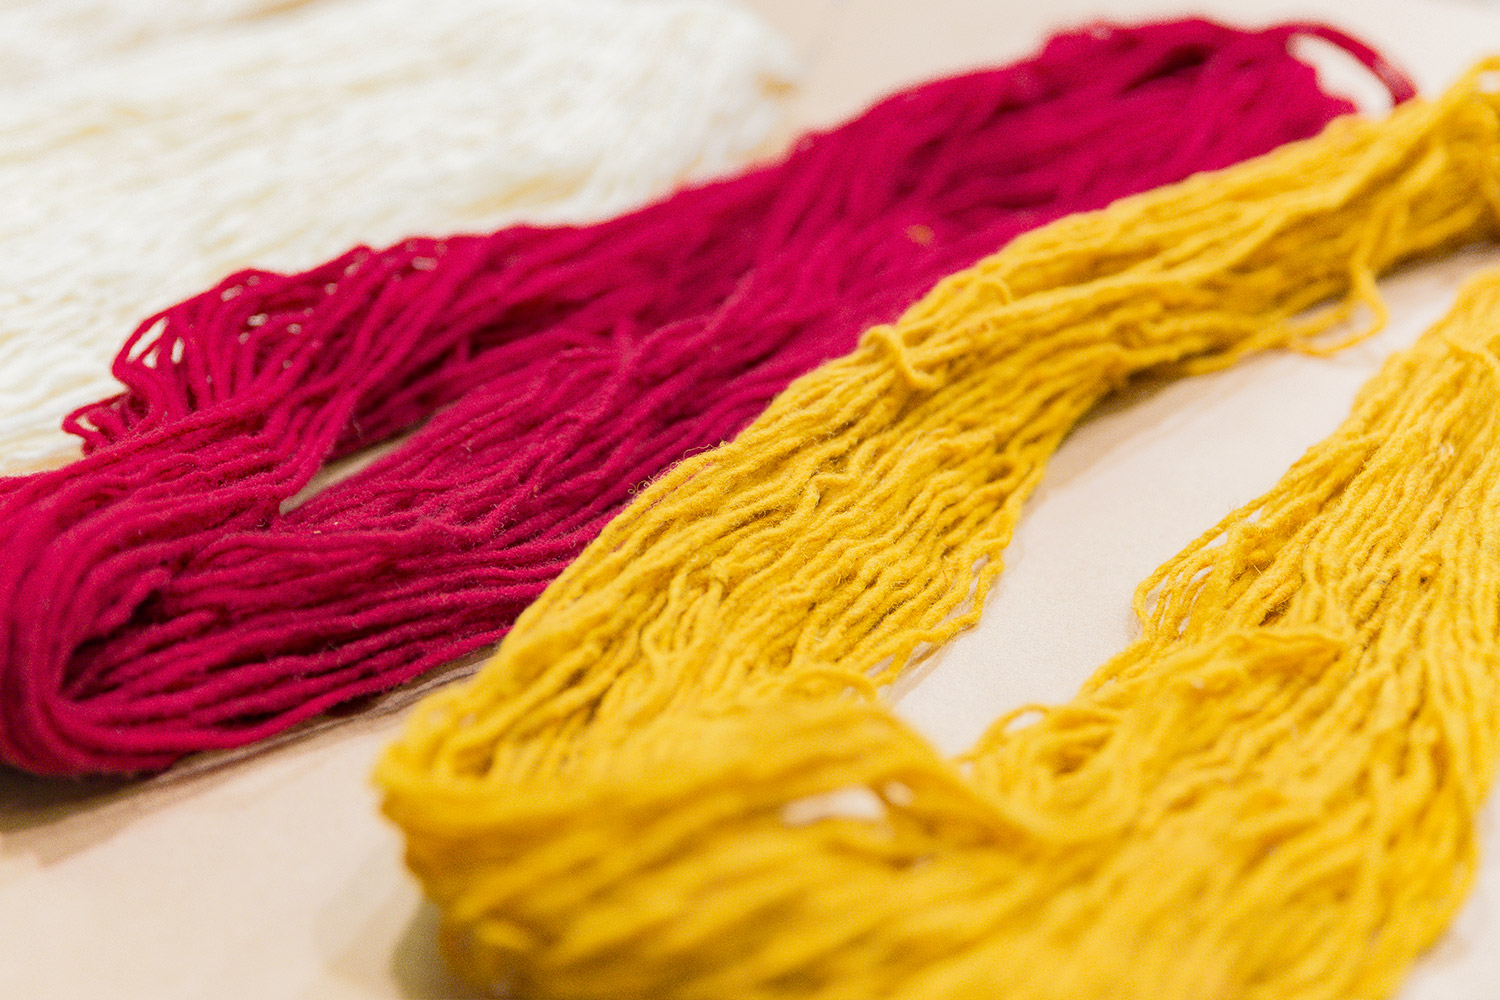 Yarn dyed with pericon, right, is a warm yellow. Yarn dyed with cochineal is a vibrant red.